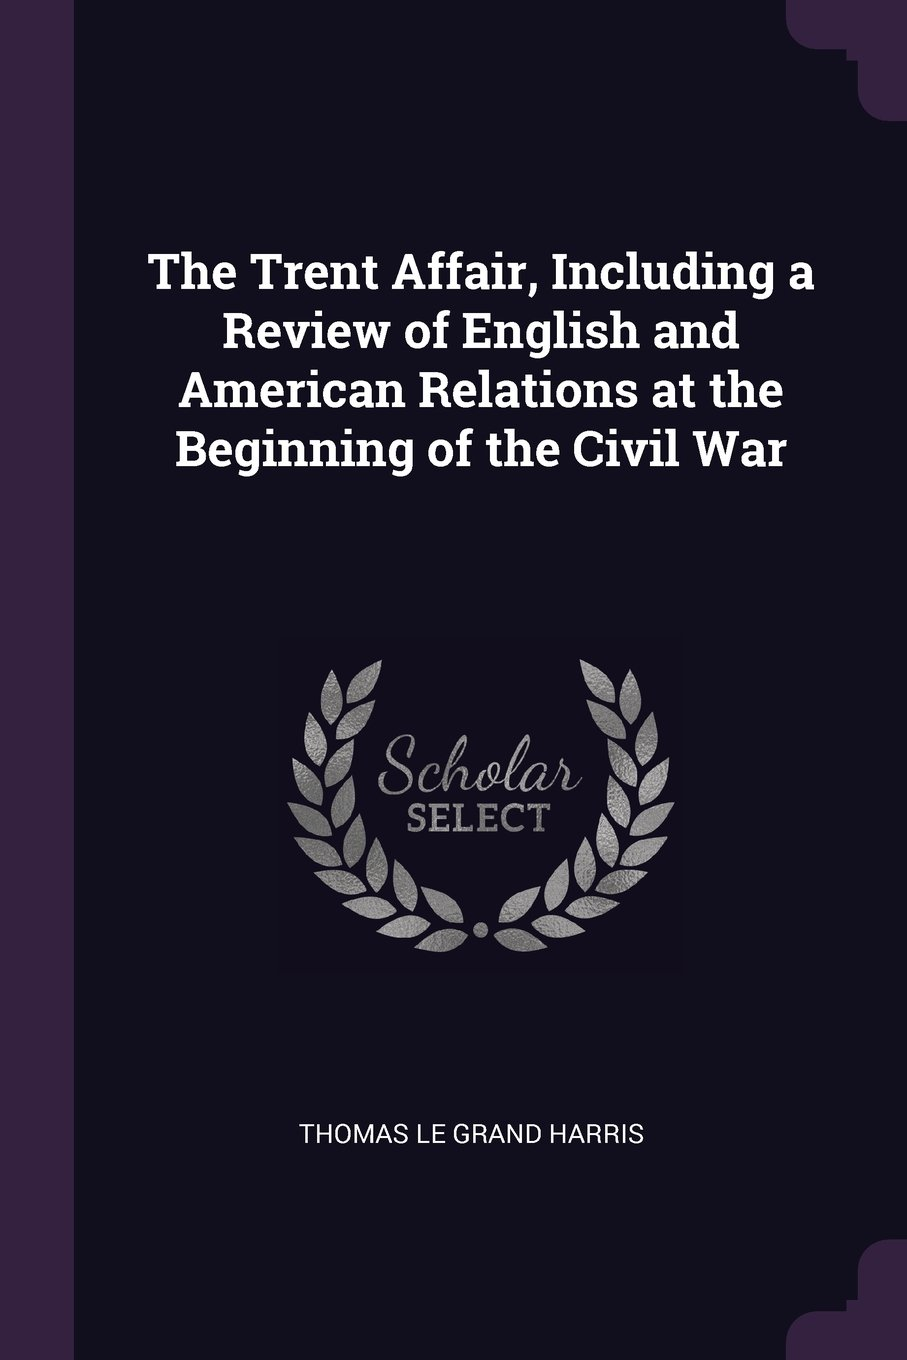 The Trent Affair, Including a Review of English and American Relations at the Beginning of the Civil War PDF